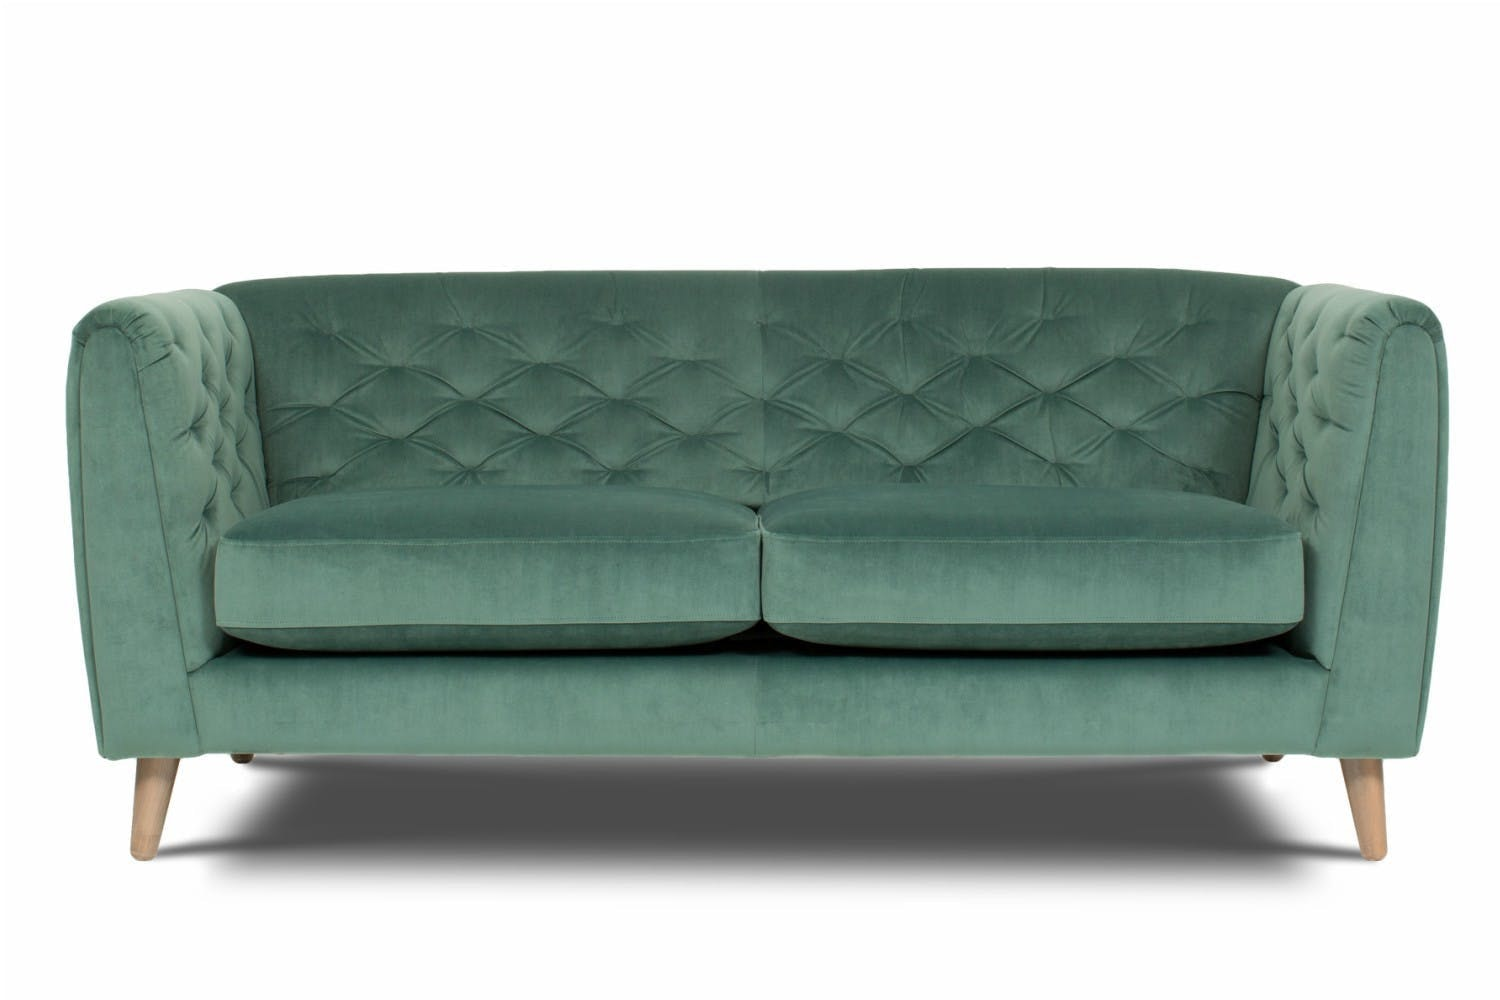 Studio Medium Sofa